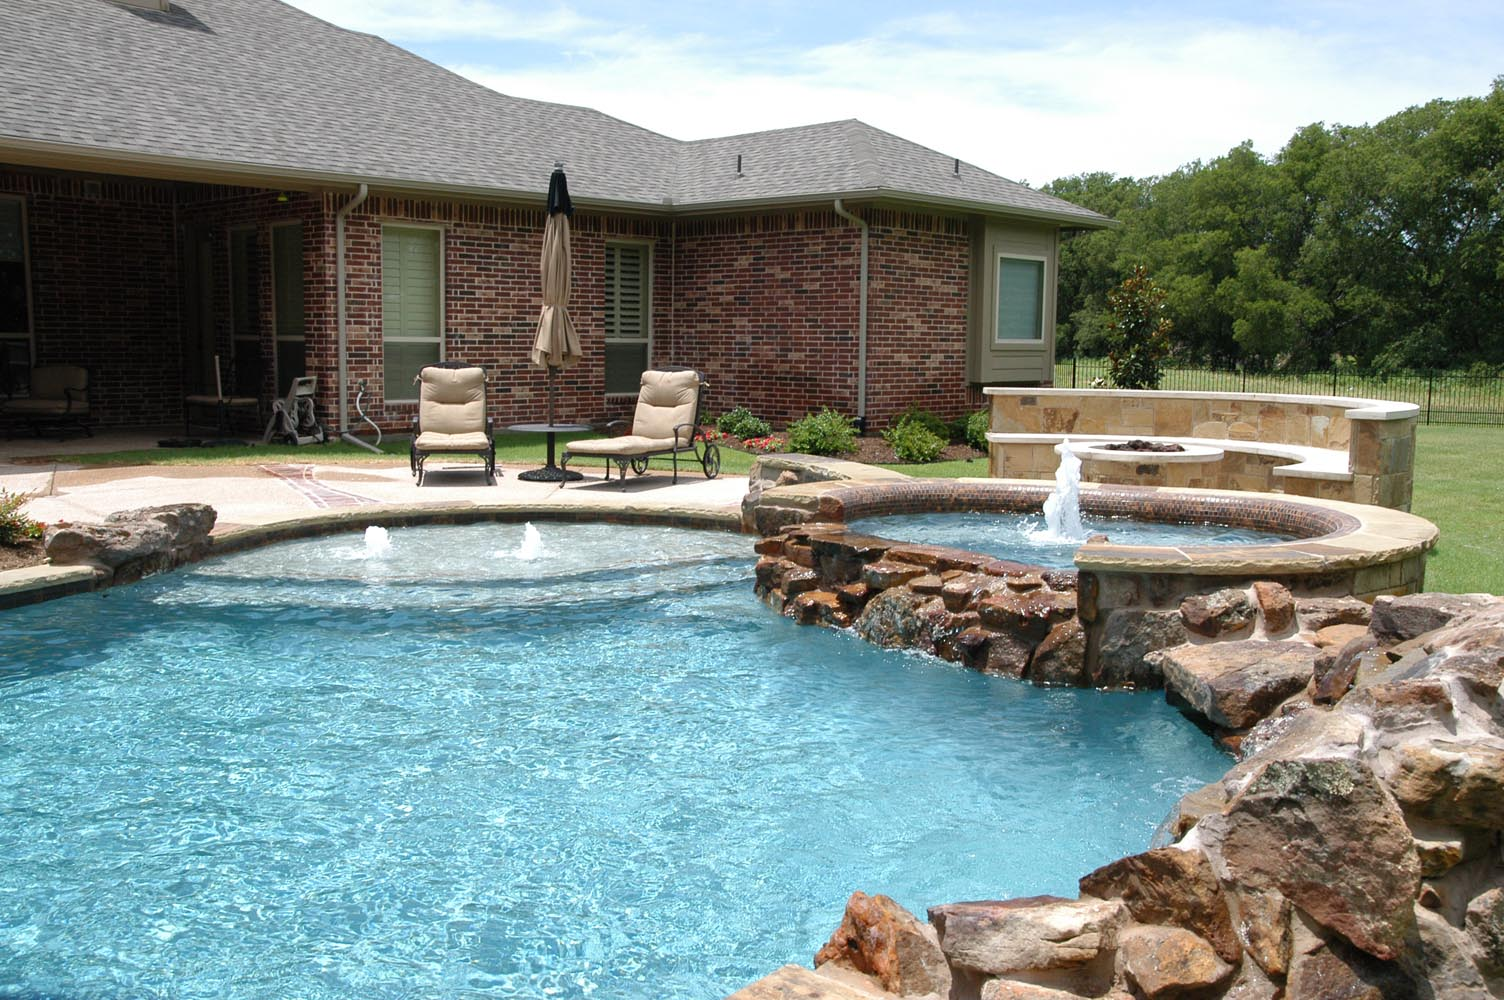 Freeform pools photo gallery custom pools images dallas for Pool design with tanning ledge